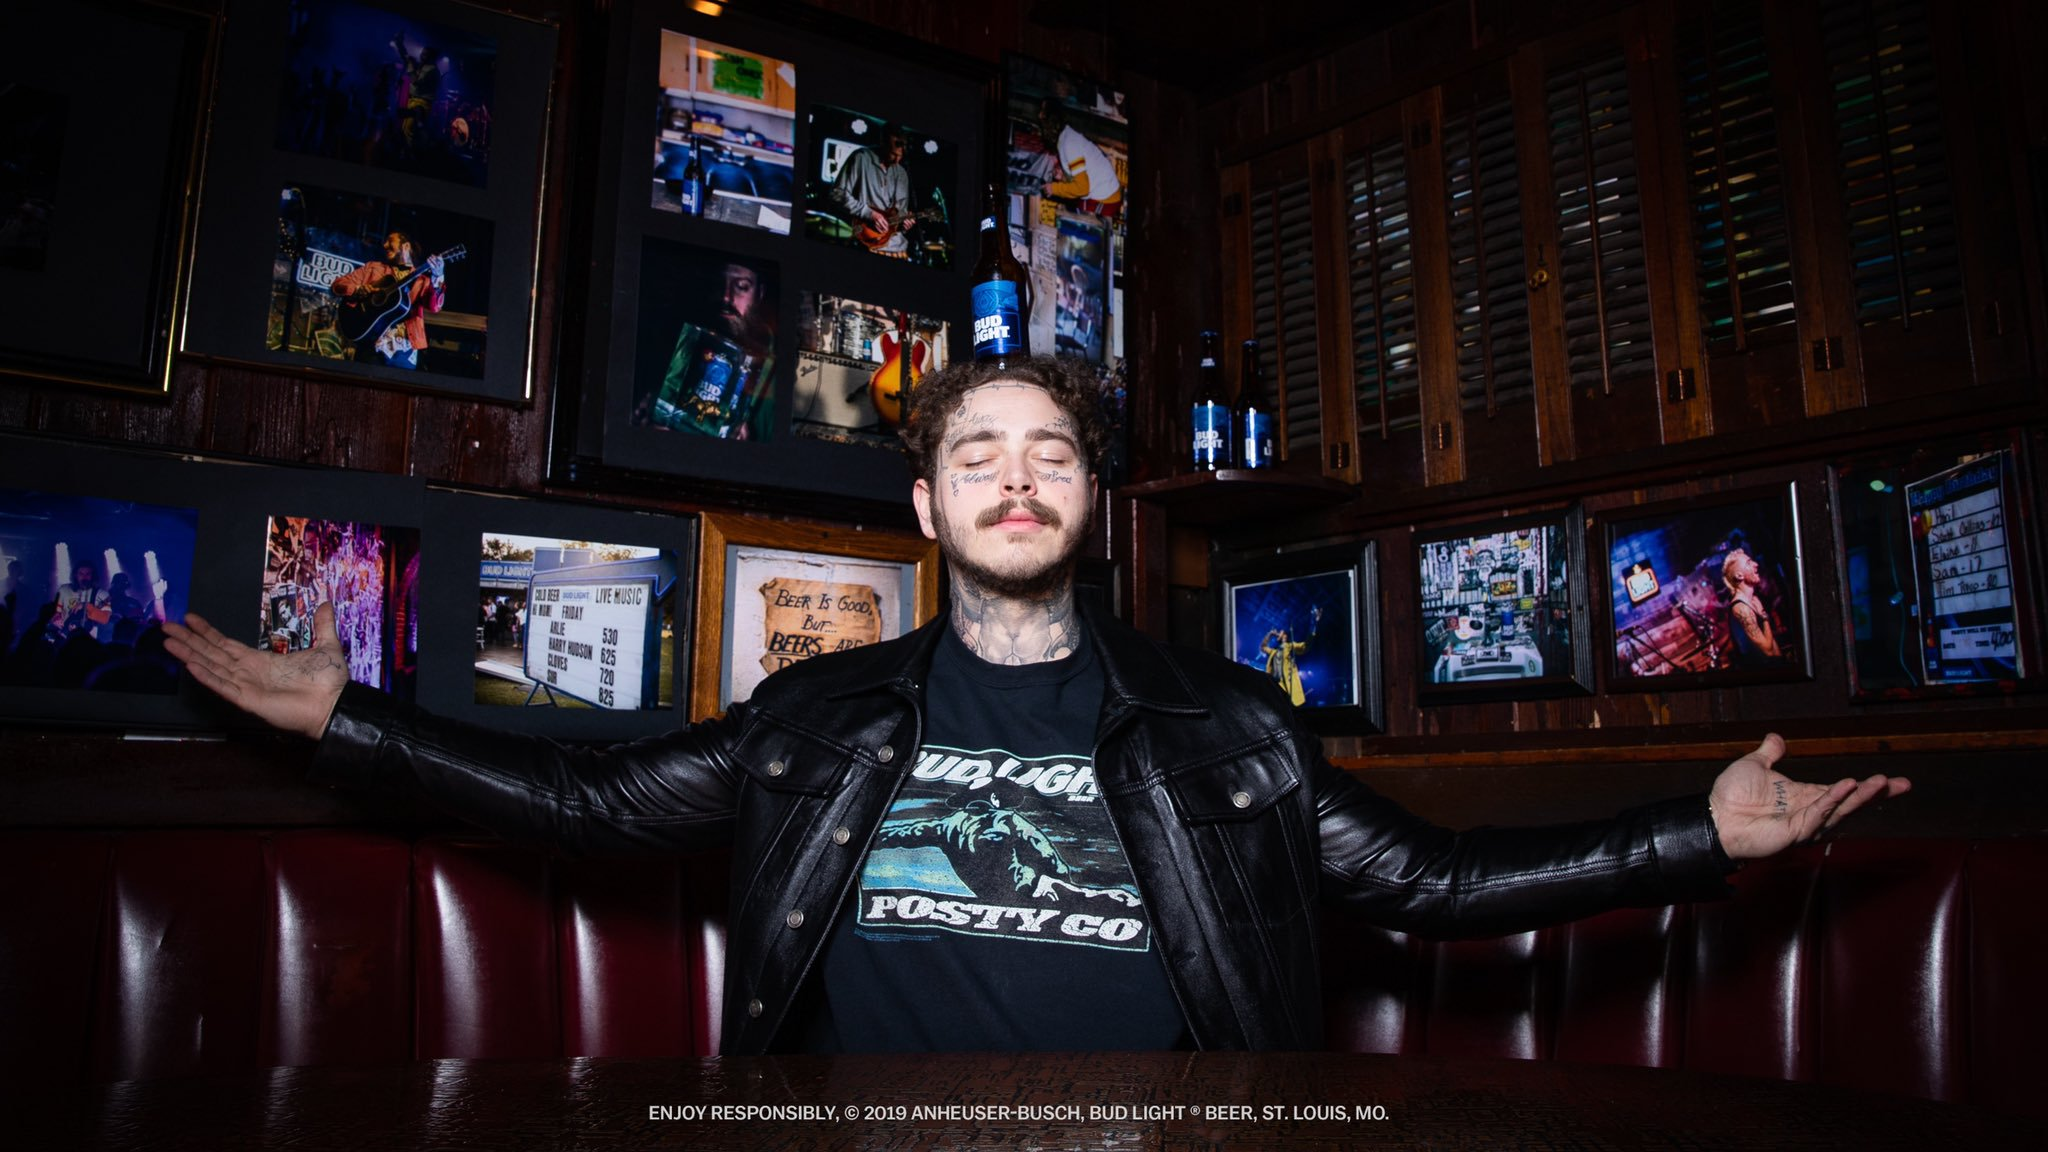 【新曲】Post Malone の Hollywood's Bleeding